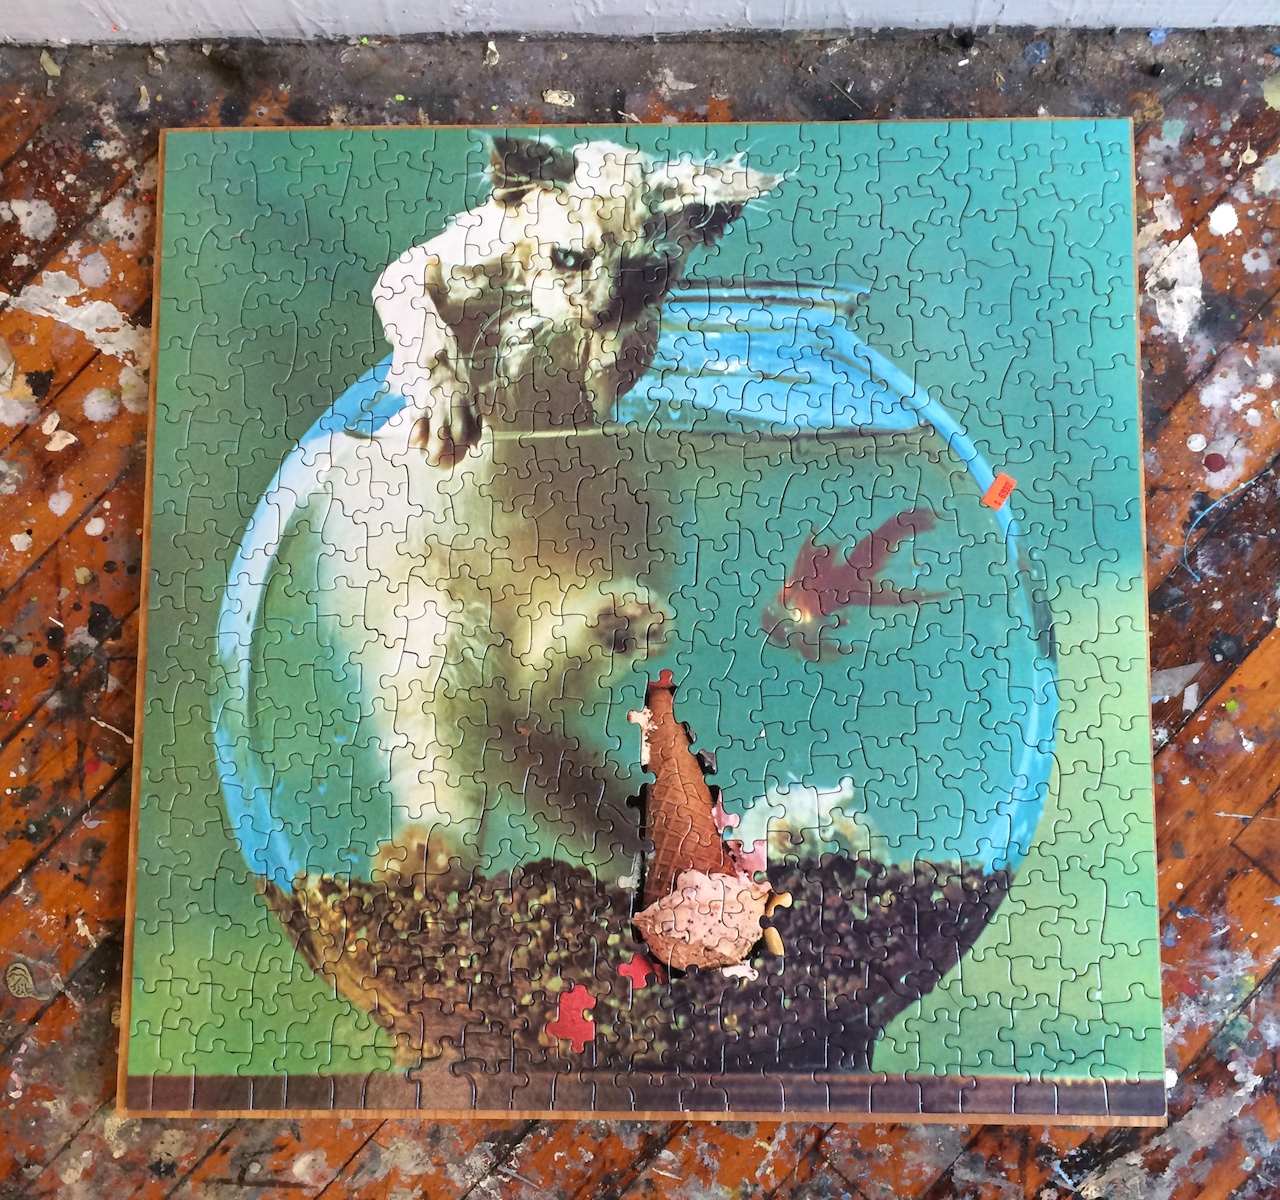 A jigsaw puzzle in Rachel Schmidhofer's studio combining pieces from two unrelated puzzles